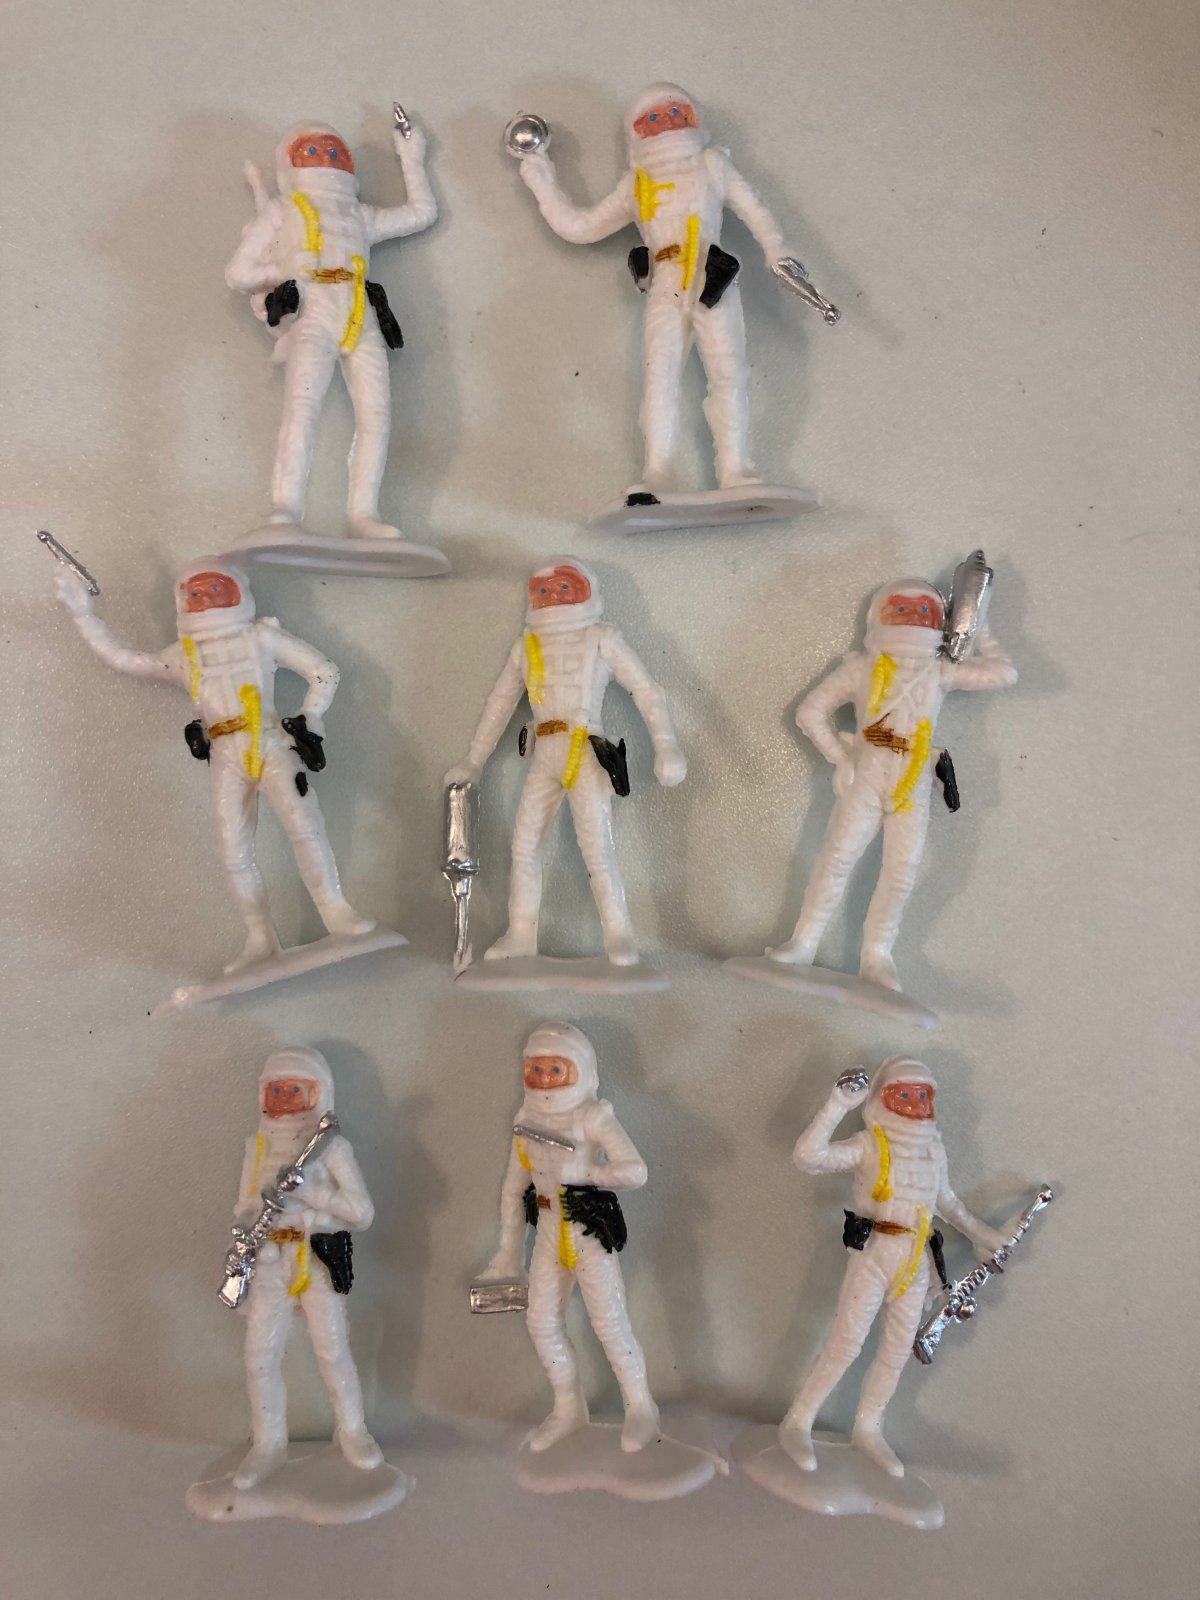 Astronauts Figurines 8 pc Cake Topper Set